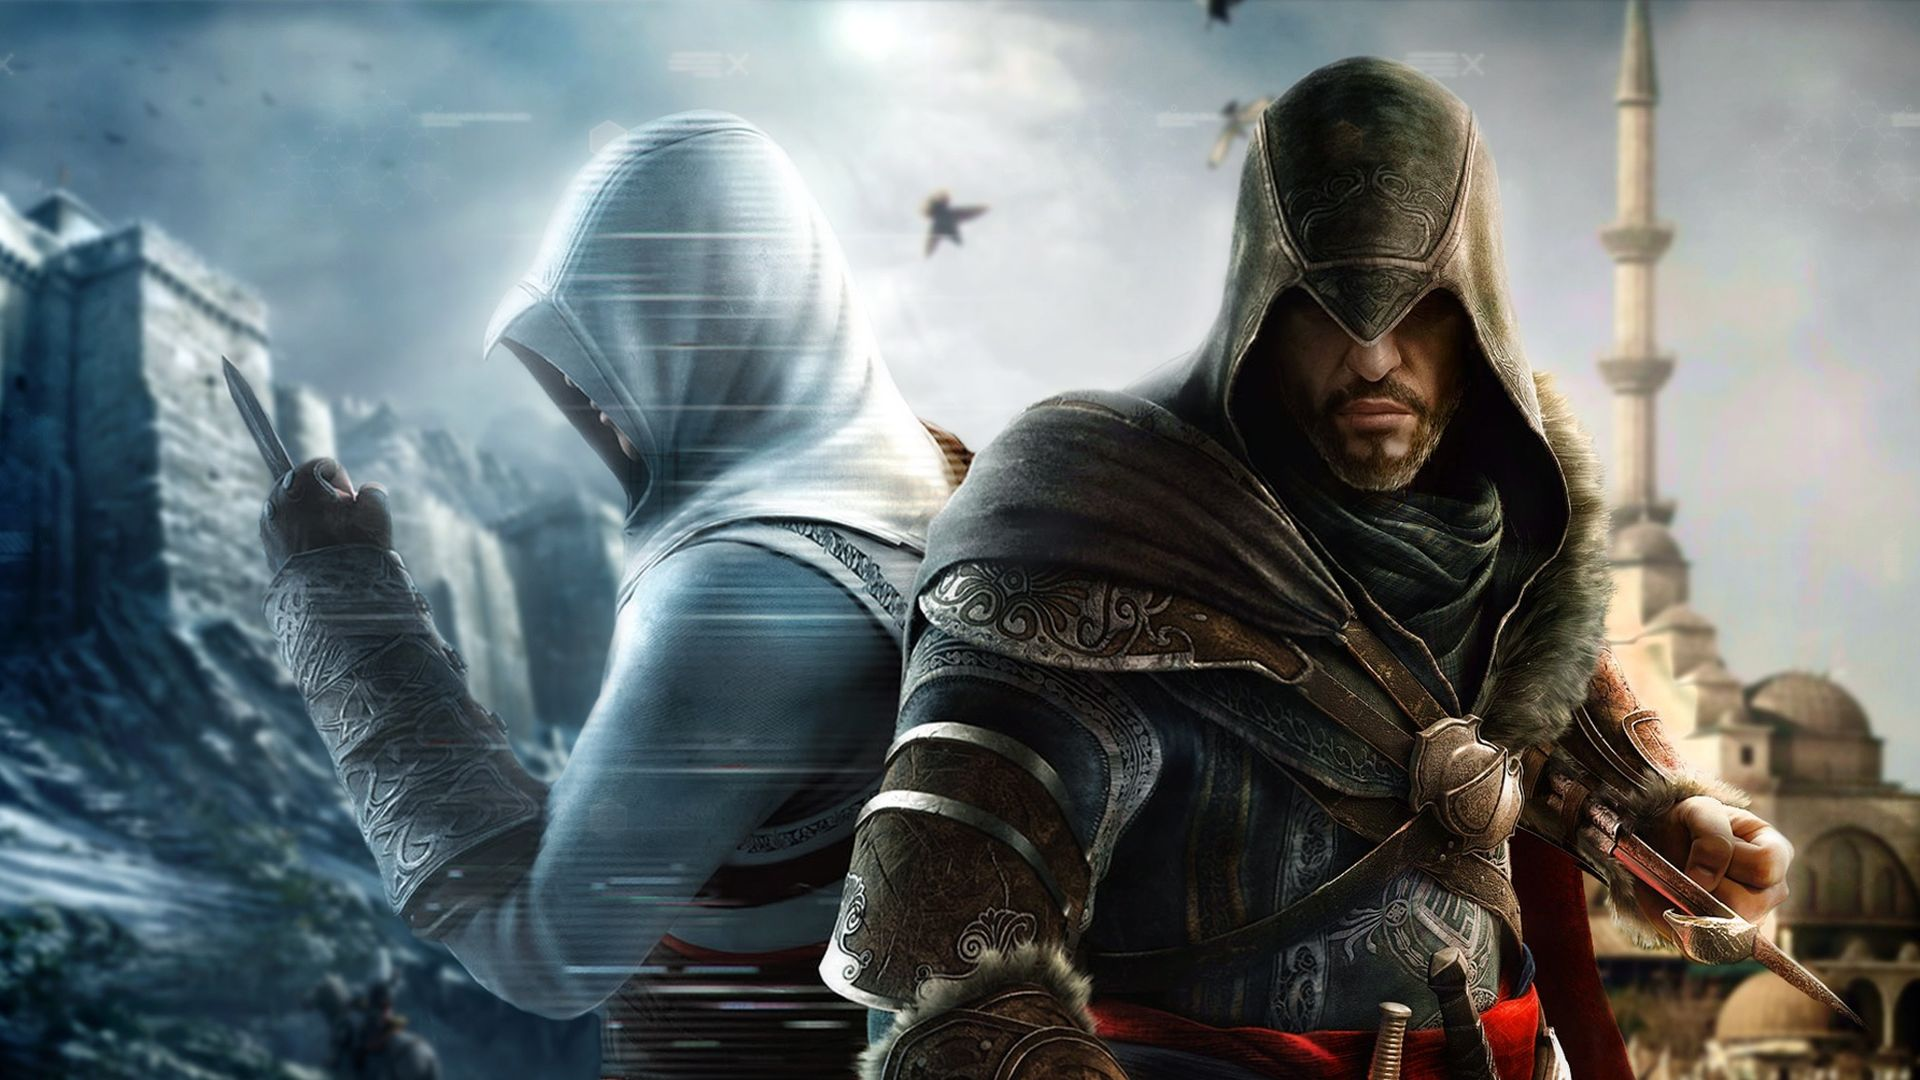 assassins_creed___revelations-wallpaper-1920x1080.jpg